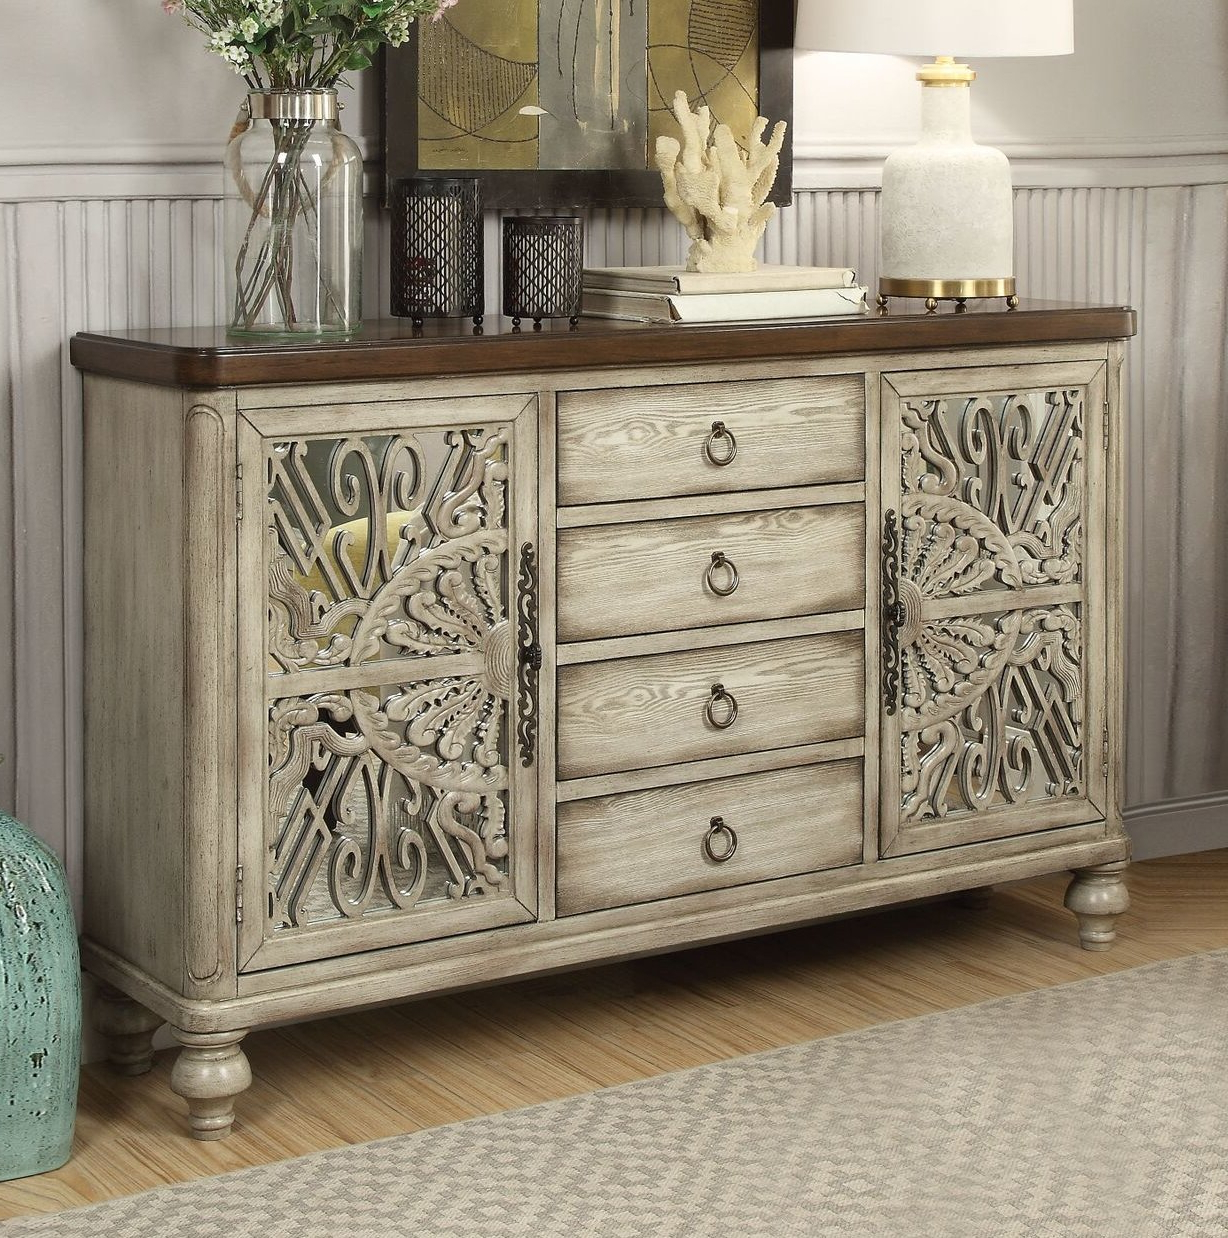 Extra Long Sideboard | Wayfair Regarding Kratz Sideboards (View 16 of 20)